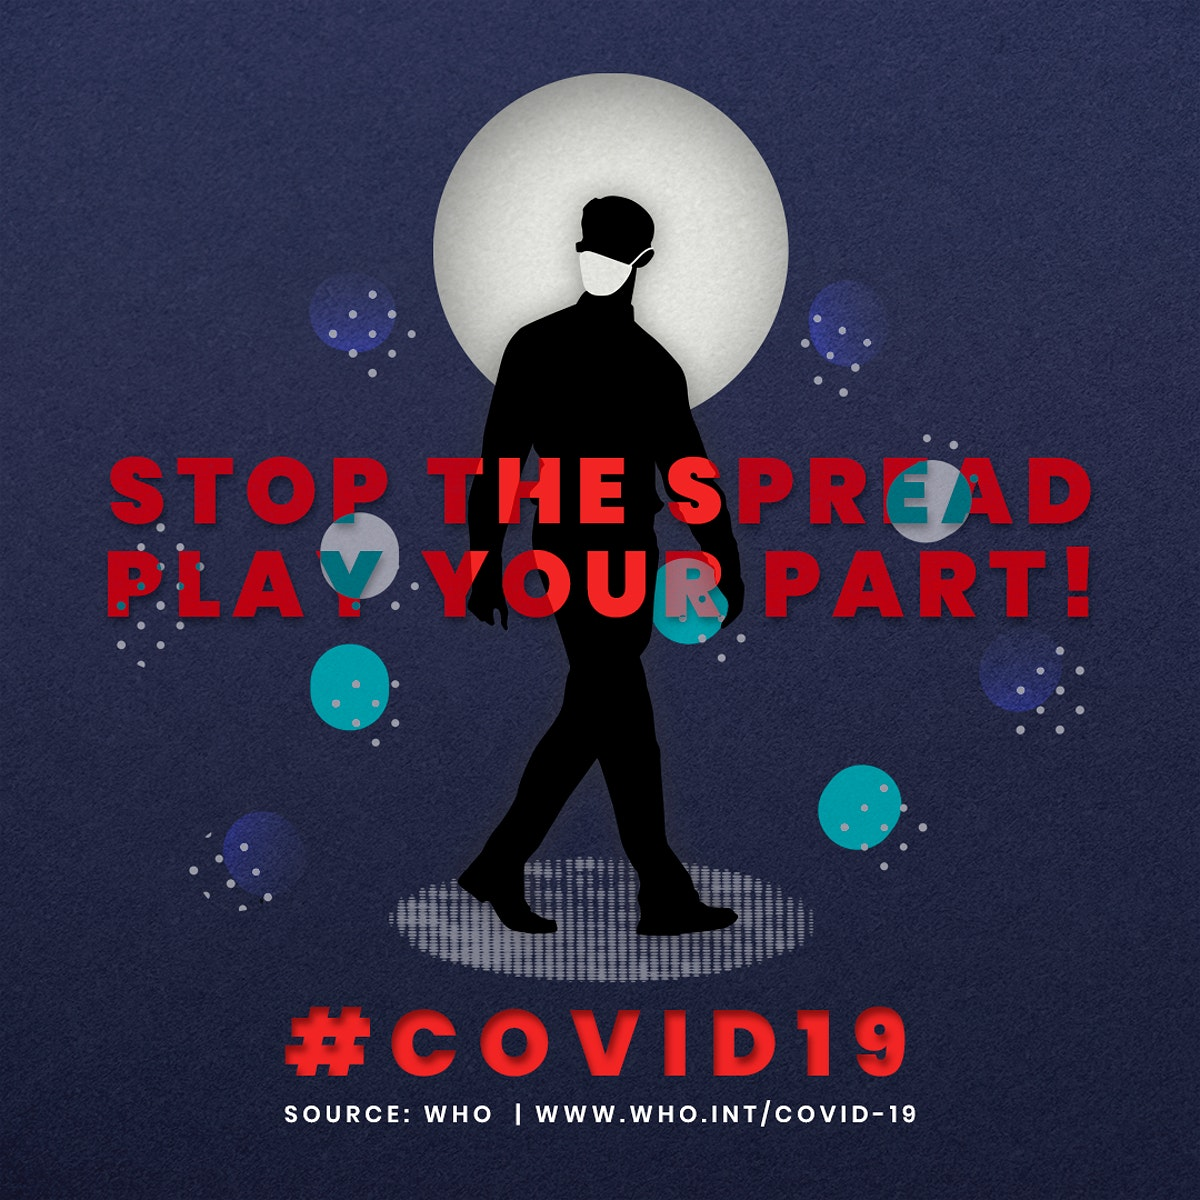 Stop the spread play your part during coronavirus pandemic social template source WHO mockup